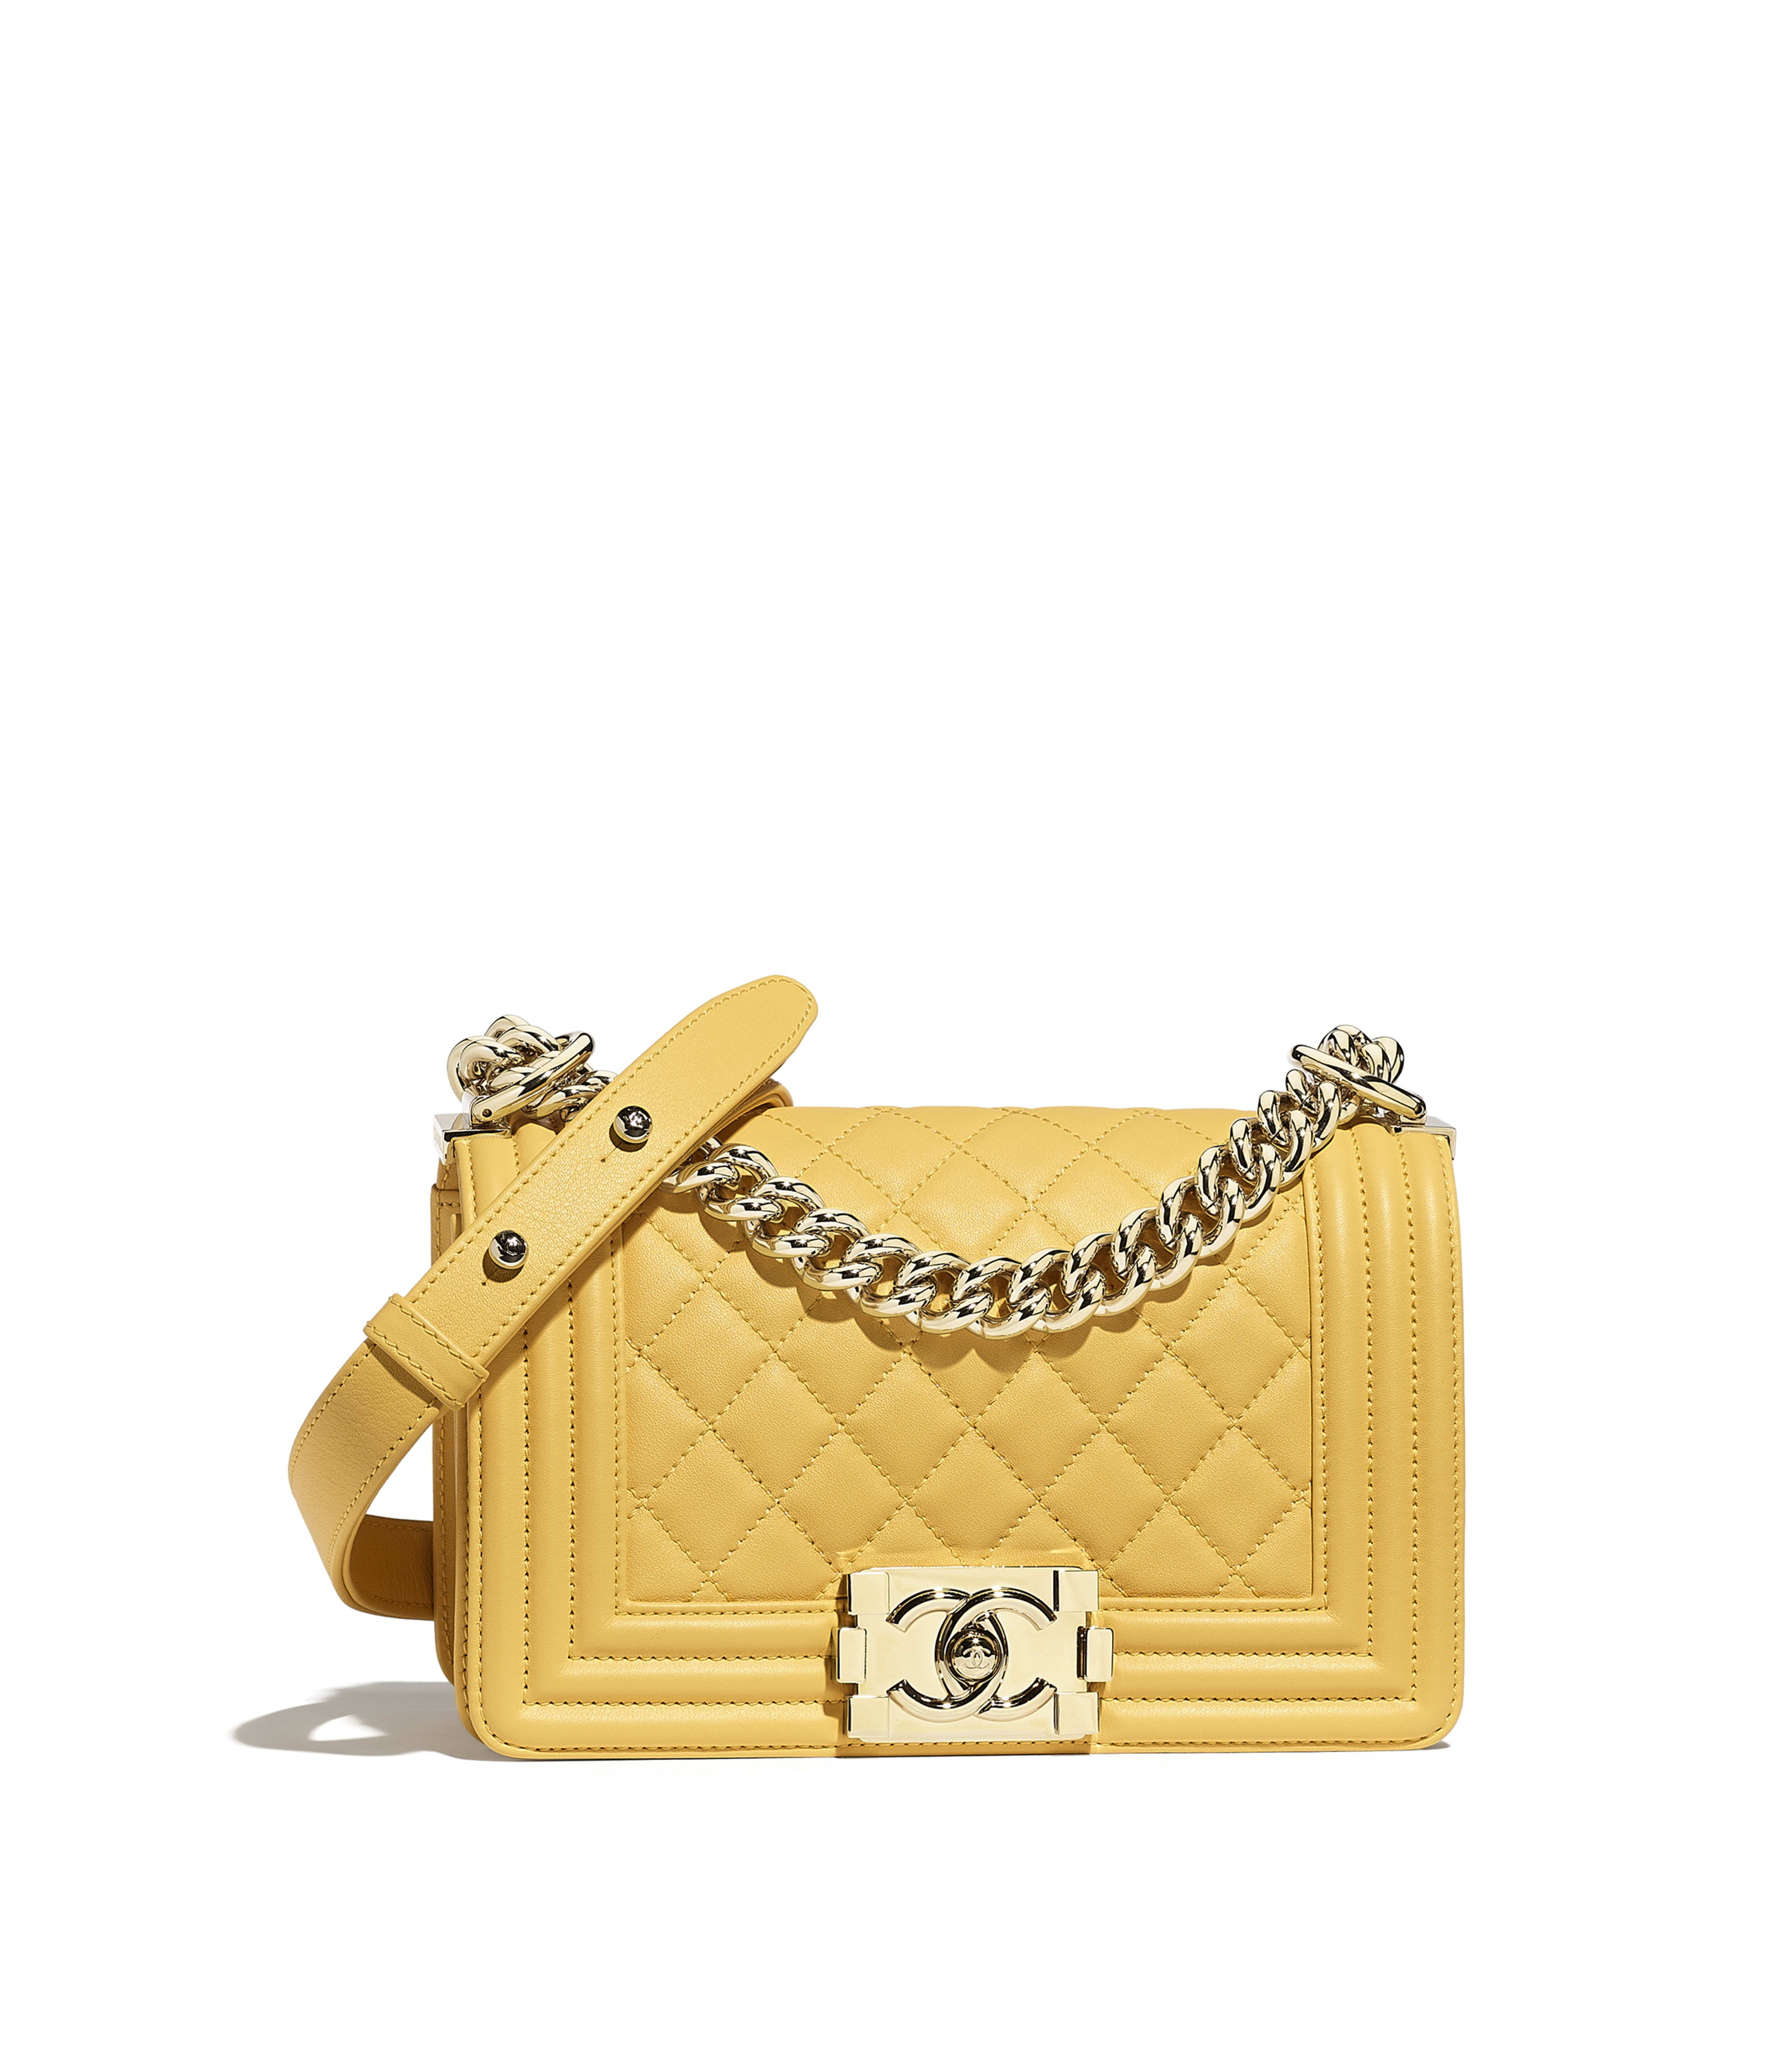 7dc2f26a6009 Small BOY CHANEL Handbag Calfskin & Gold-Tone Metal, Yellow Ref.  A67085Y255695B642